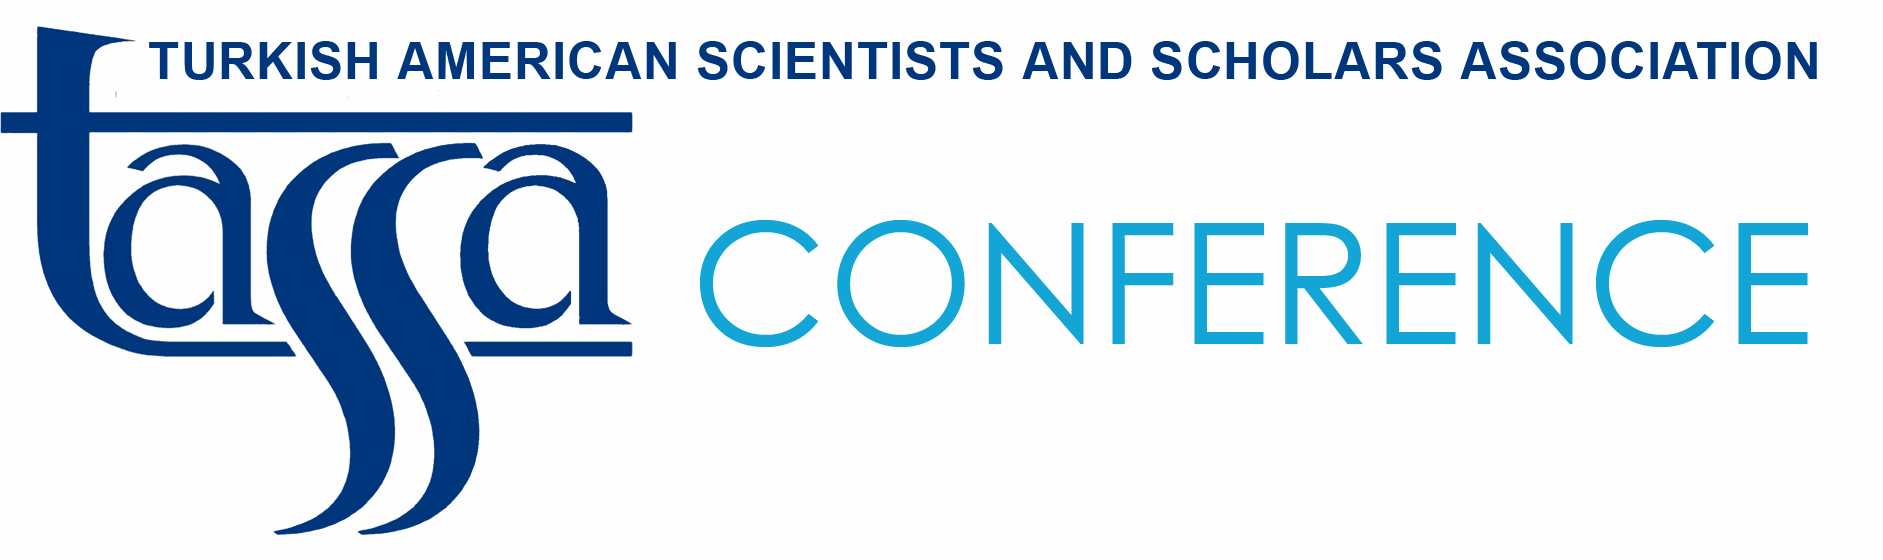 http://www.tassausa.org/Content/Editor/Image/2014/Logos/Conference-Logo.png